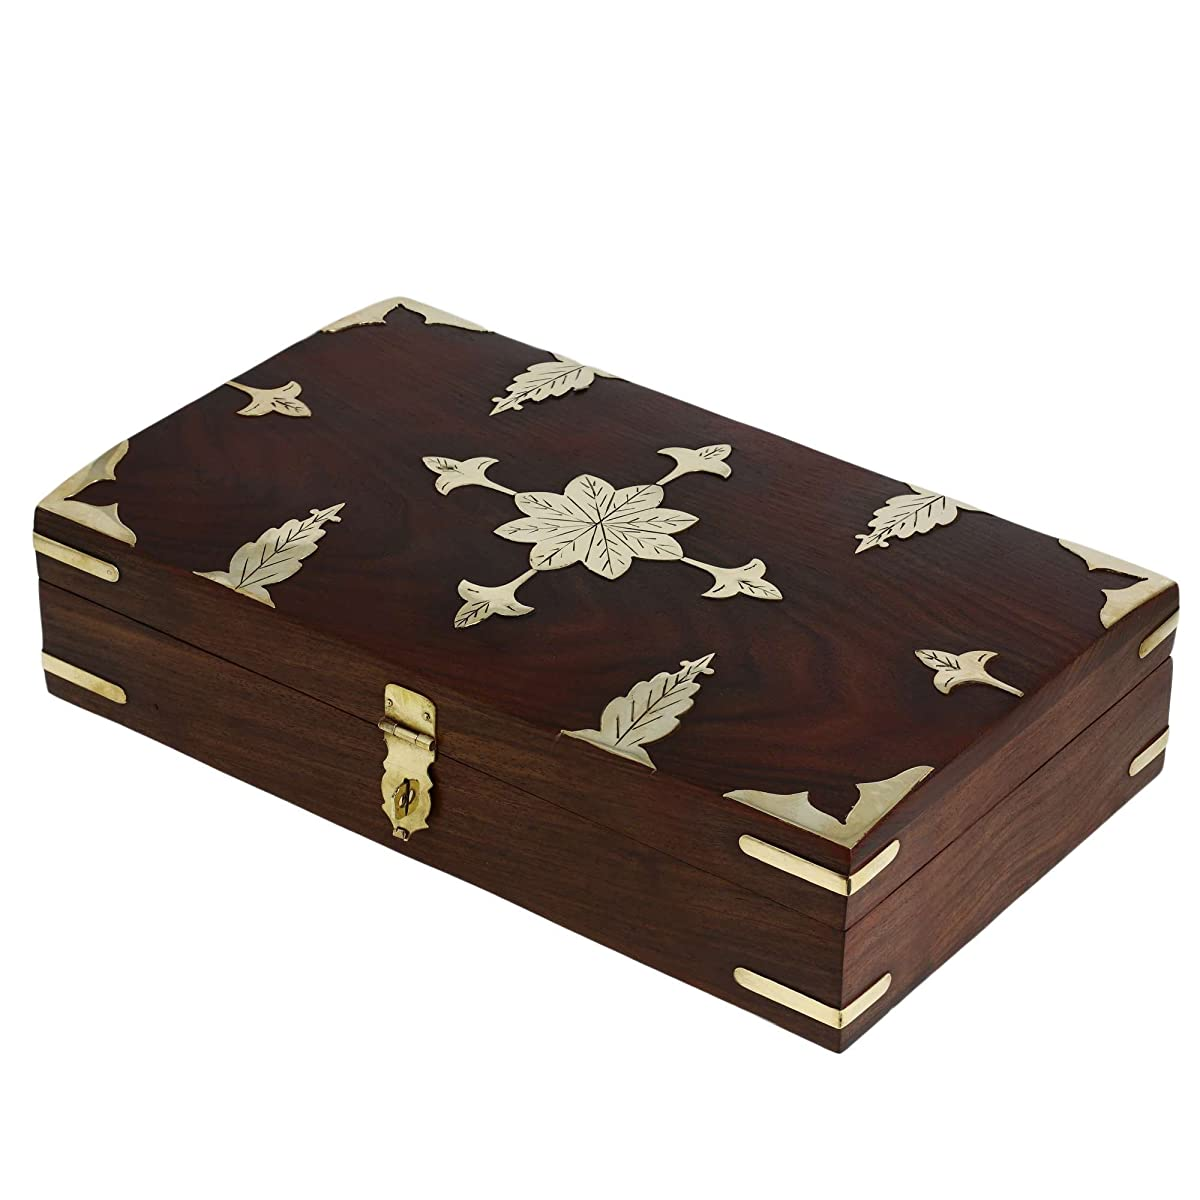 Antique style indian handmade wooden jewelry box for women for Handmade wooden jewelry box